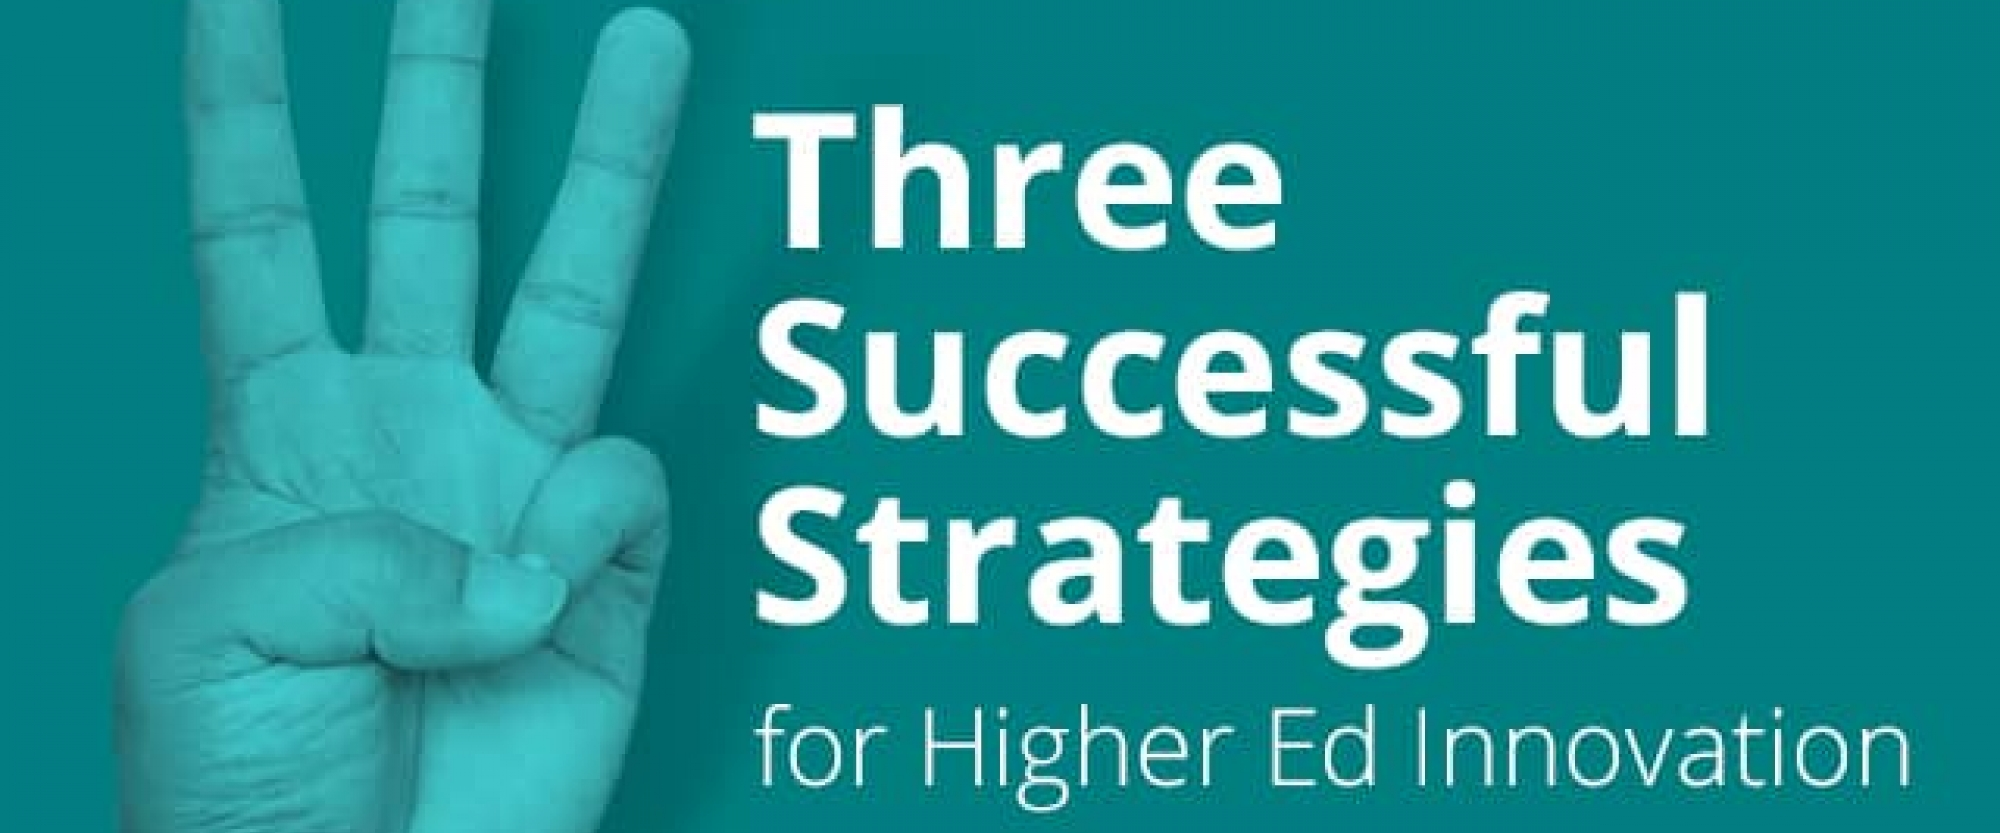 Three Successful Strategies for Higher Ed Innovation